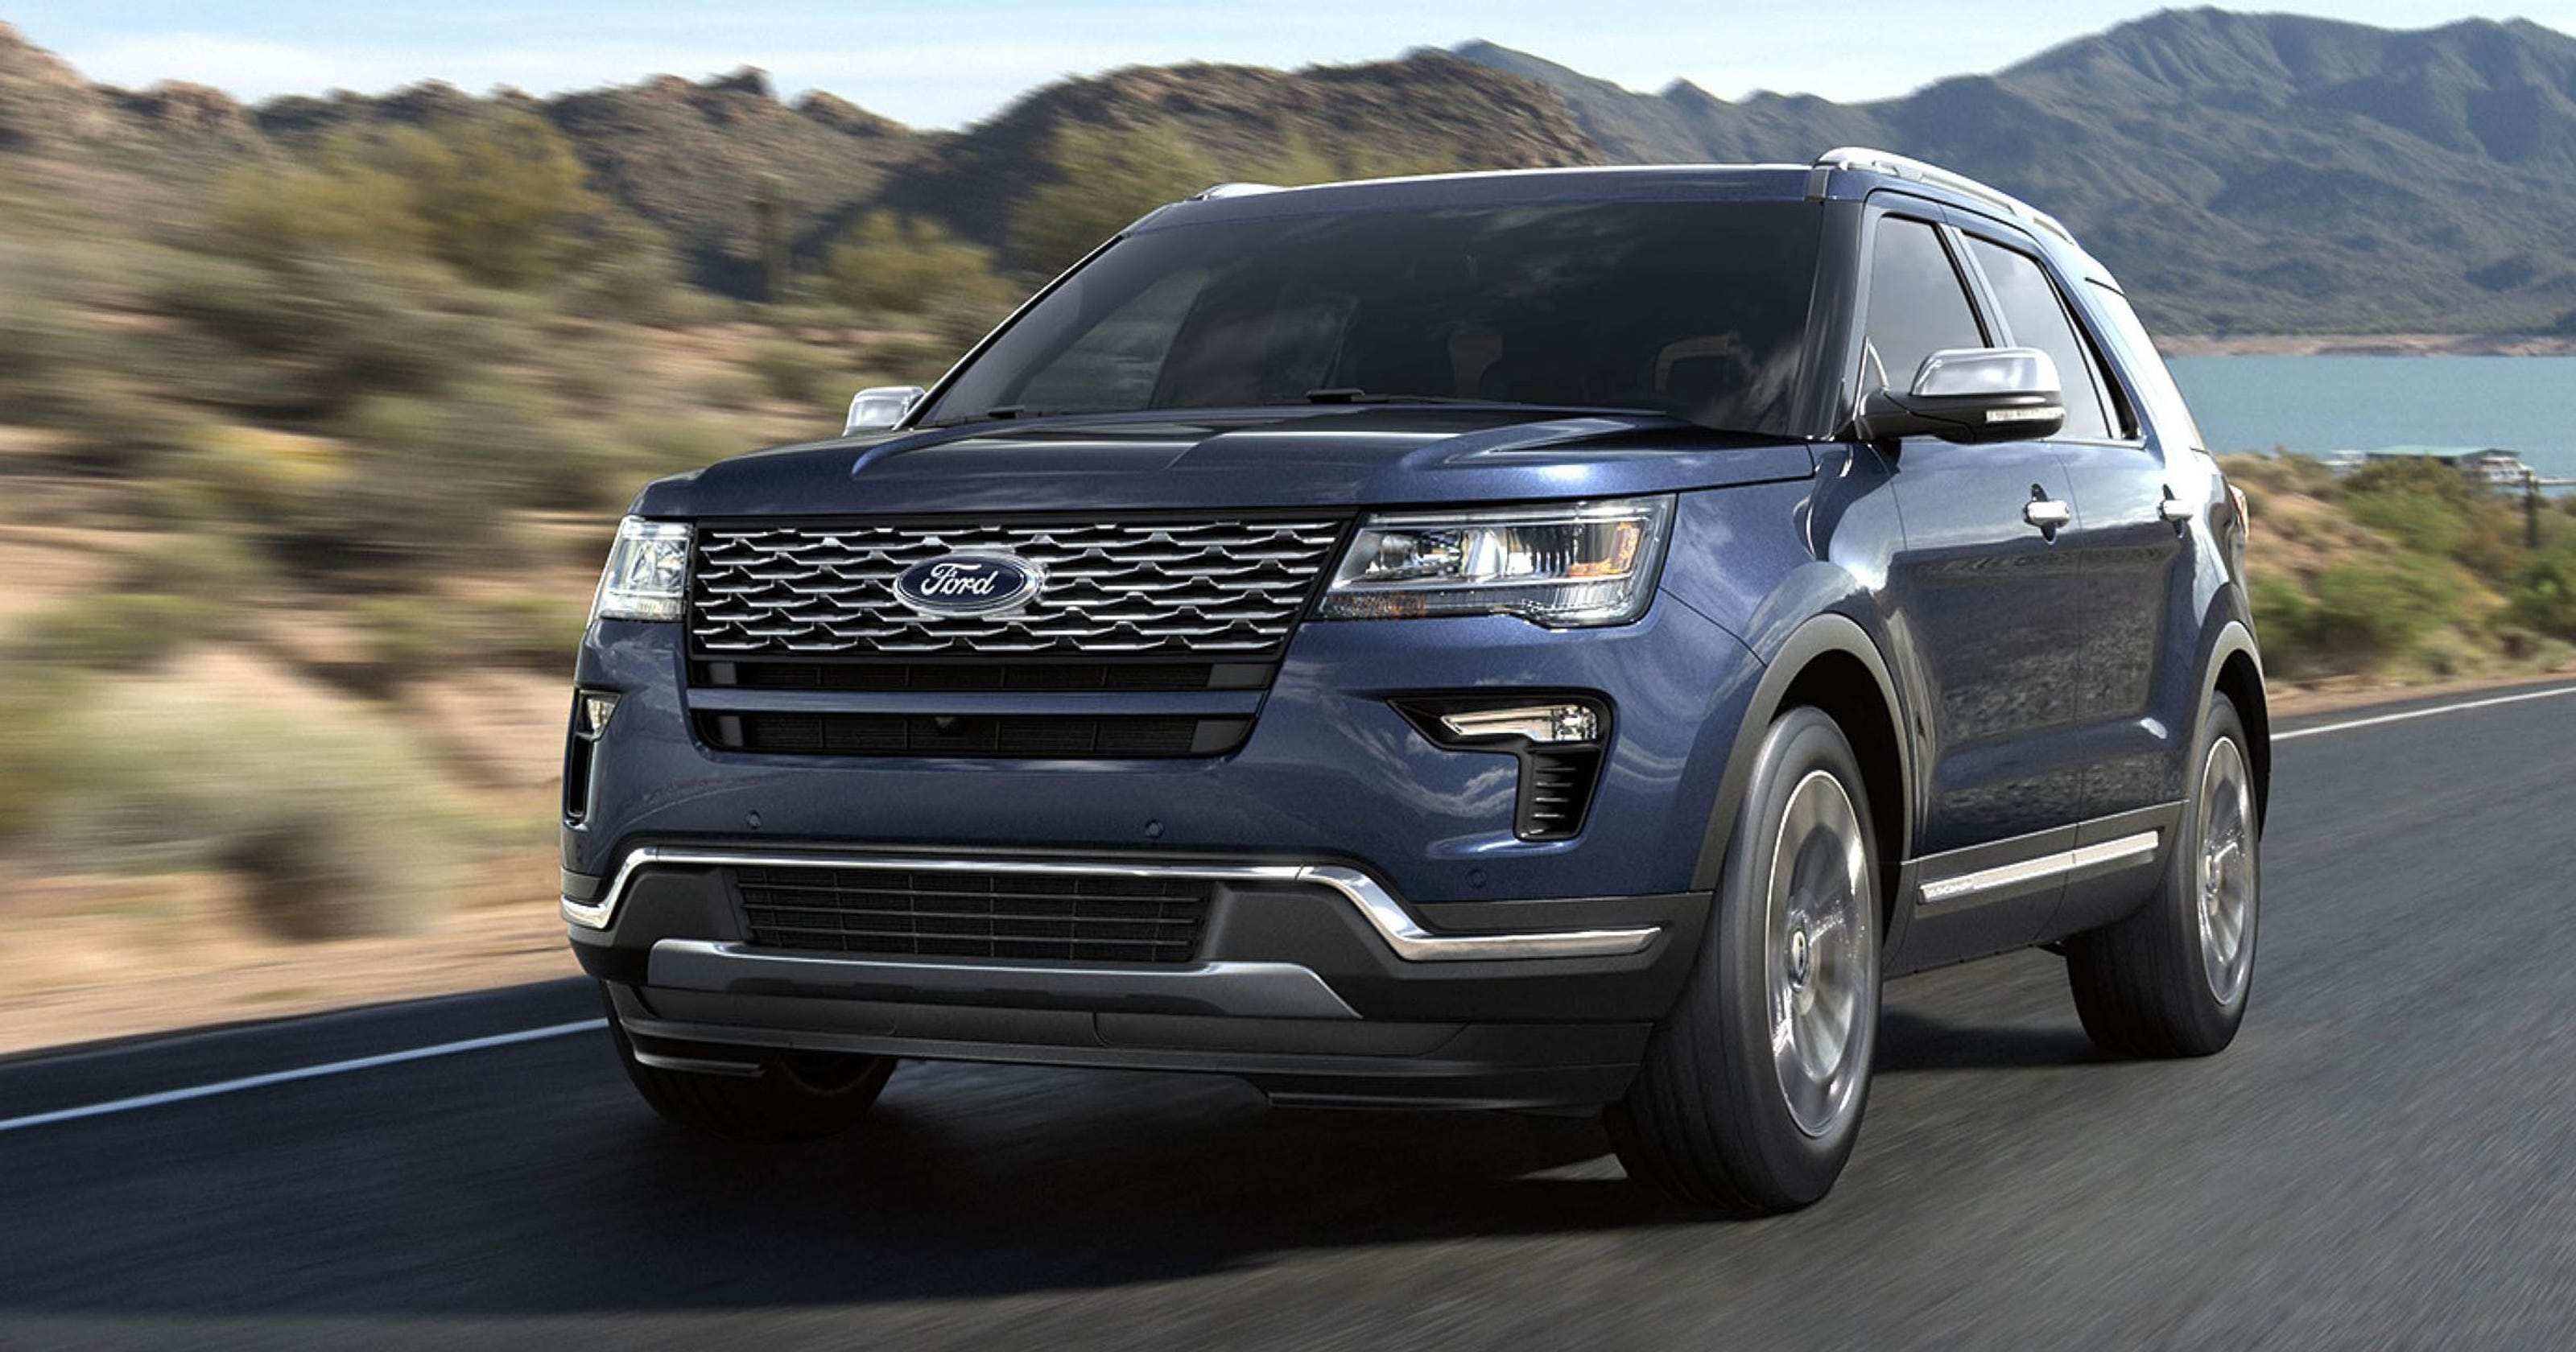 61 New 2020 Ford Explorer Job 1 Release for 2020 Ford Explorer Job 1